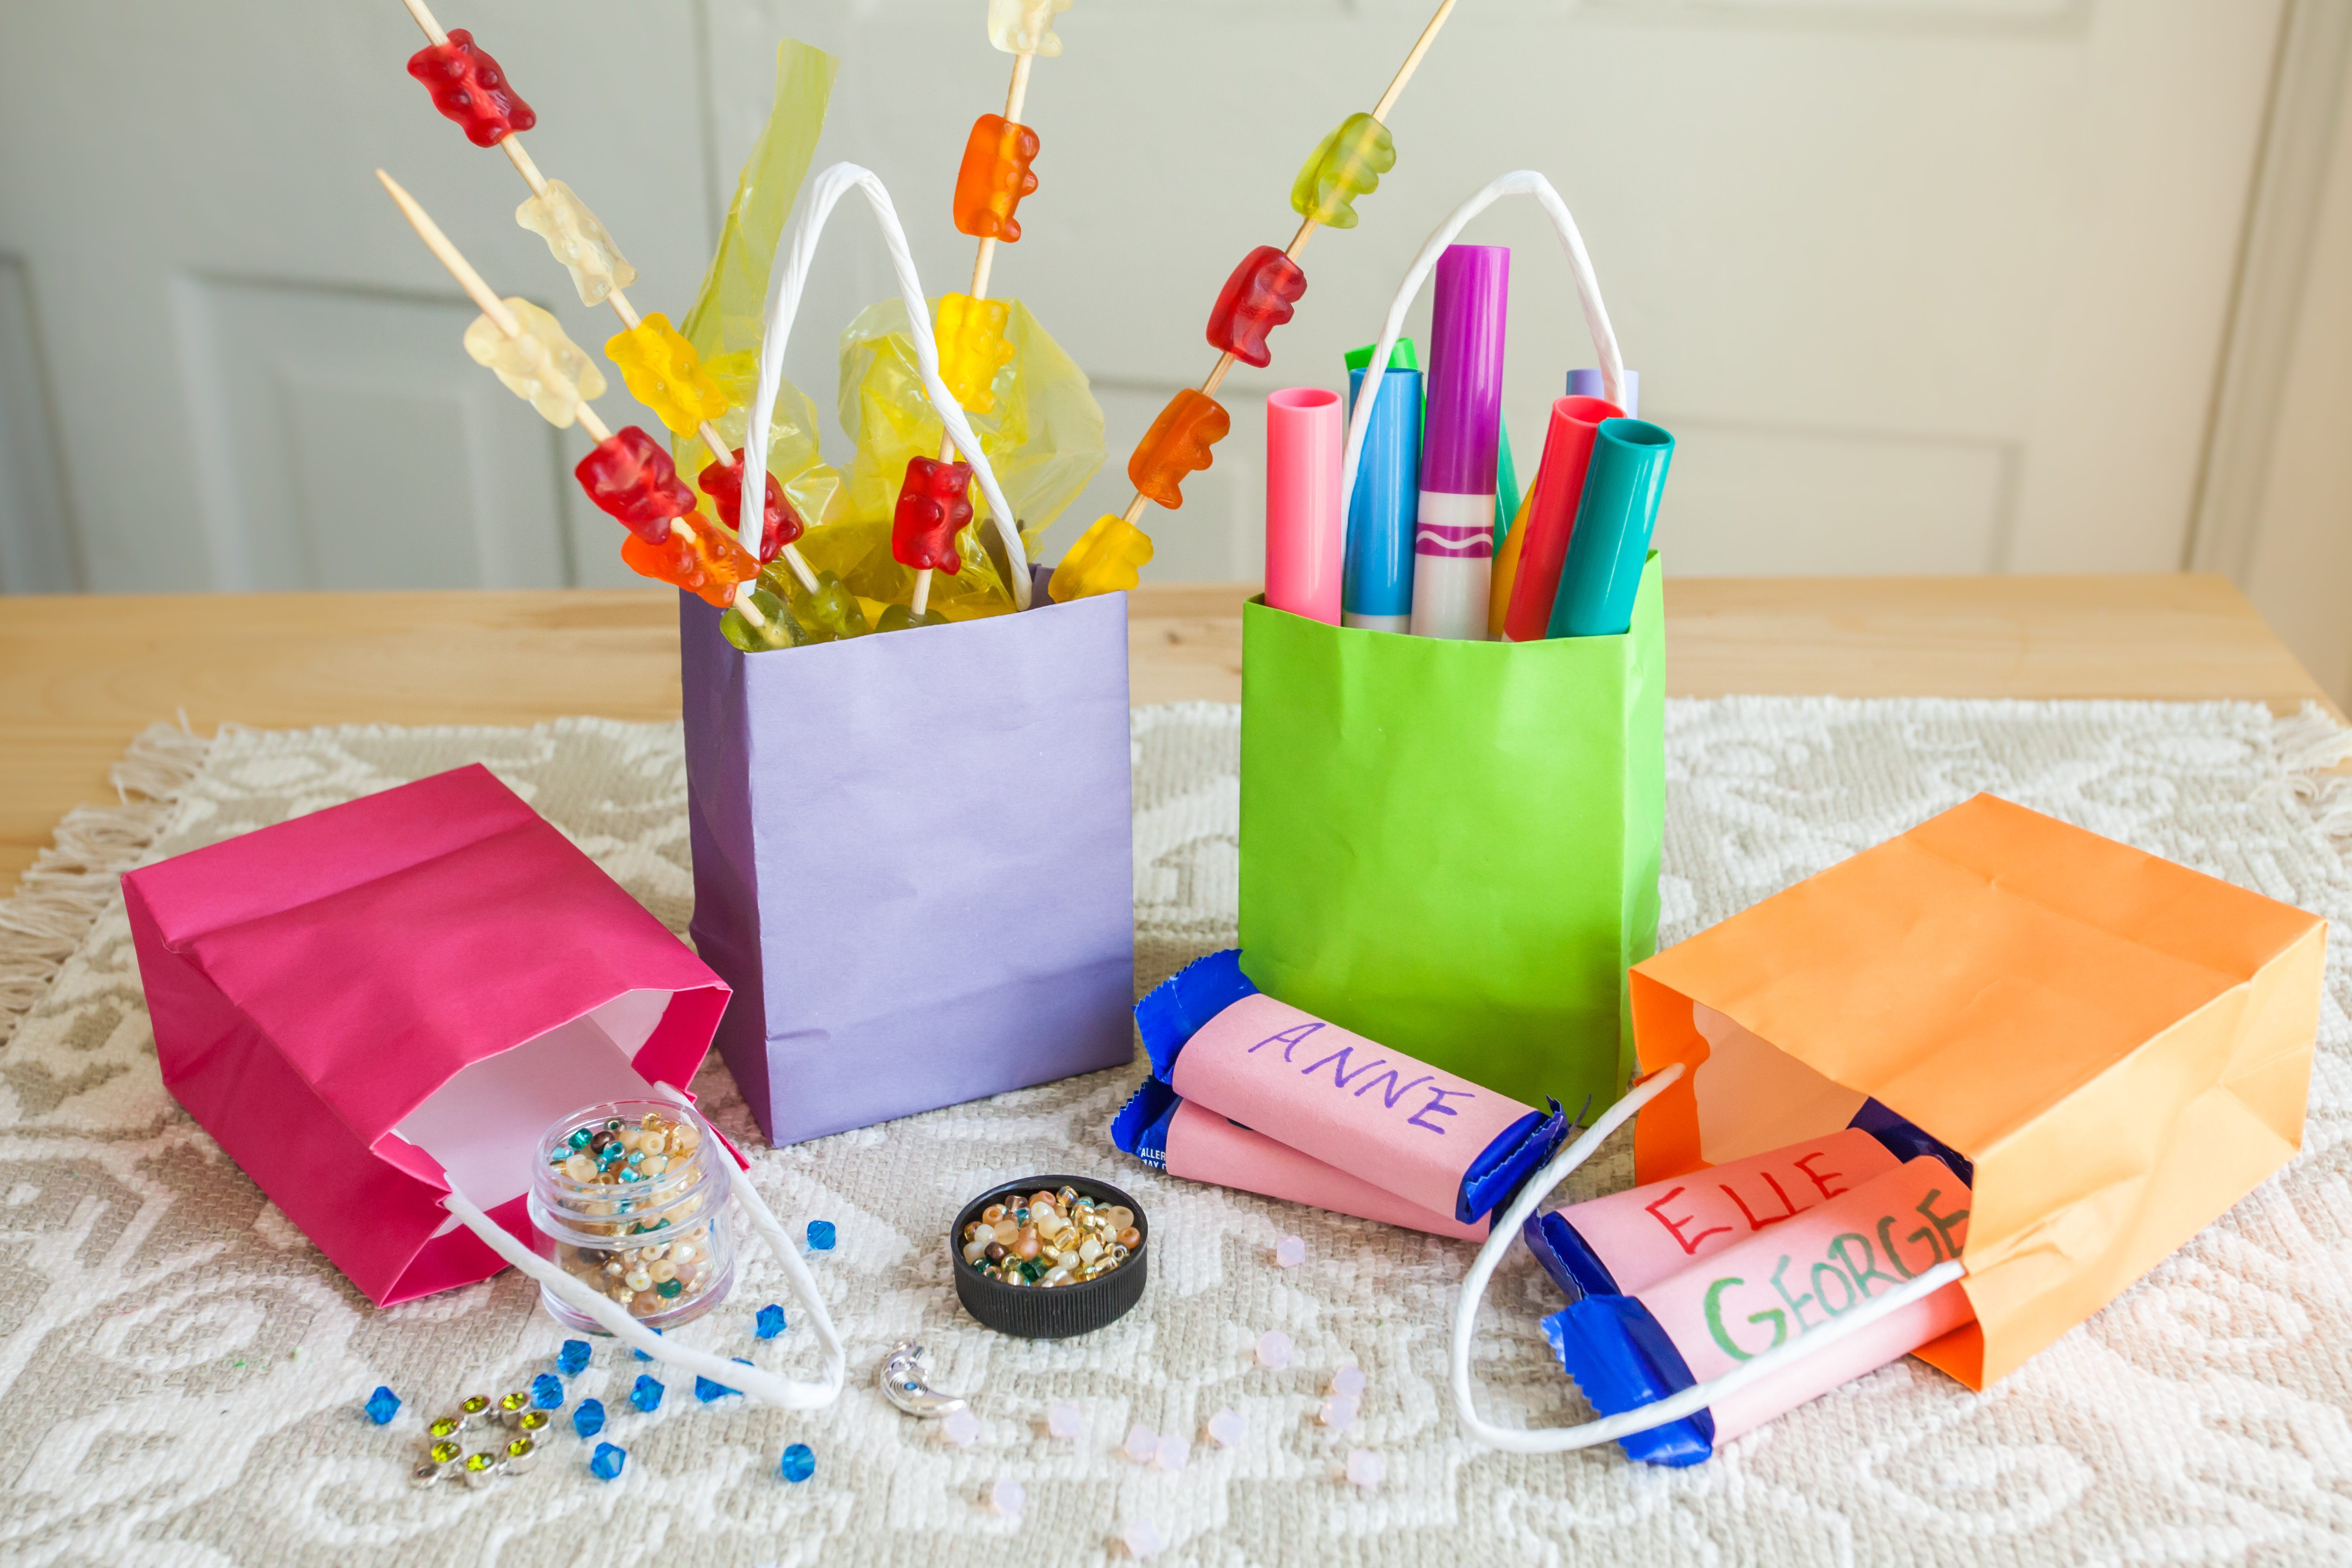 Best ideas about Birthday Gift Bag Ideas . Save or Pin Ideas for Kids Birthday Party Gift Bags with Now.